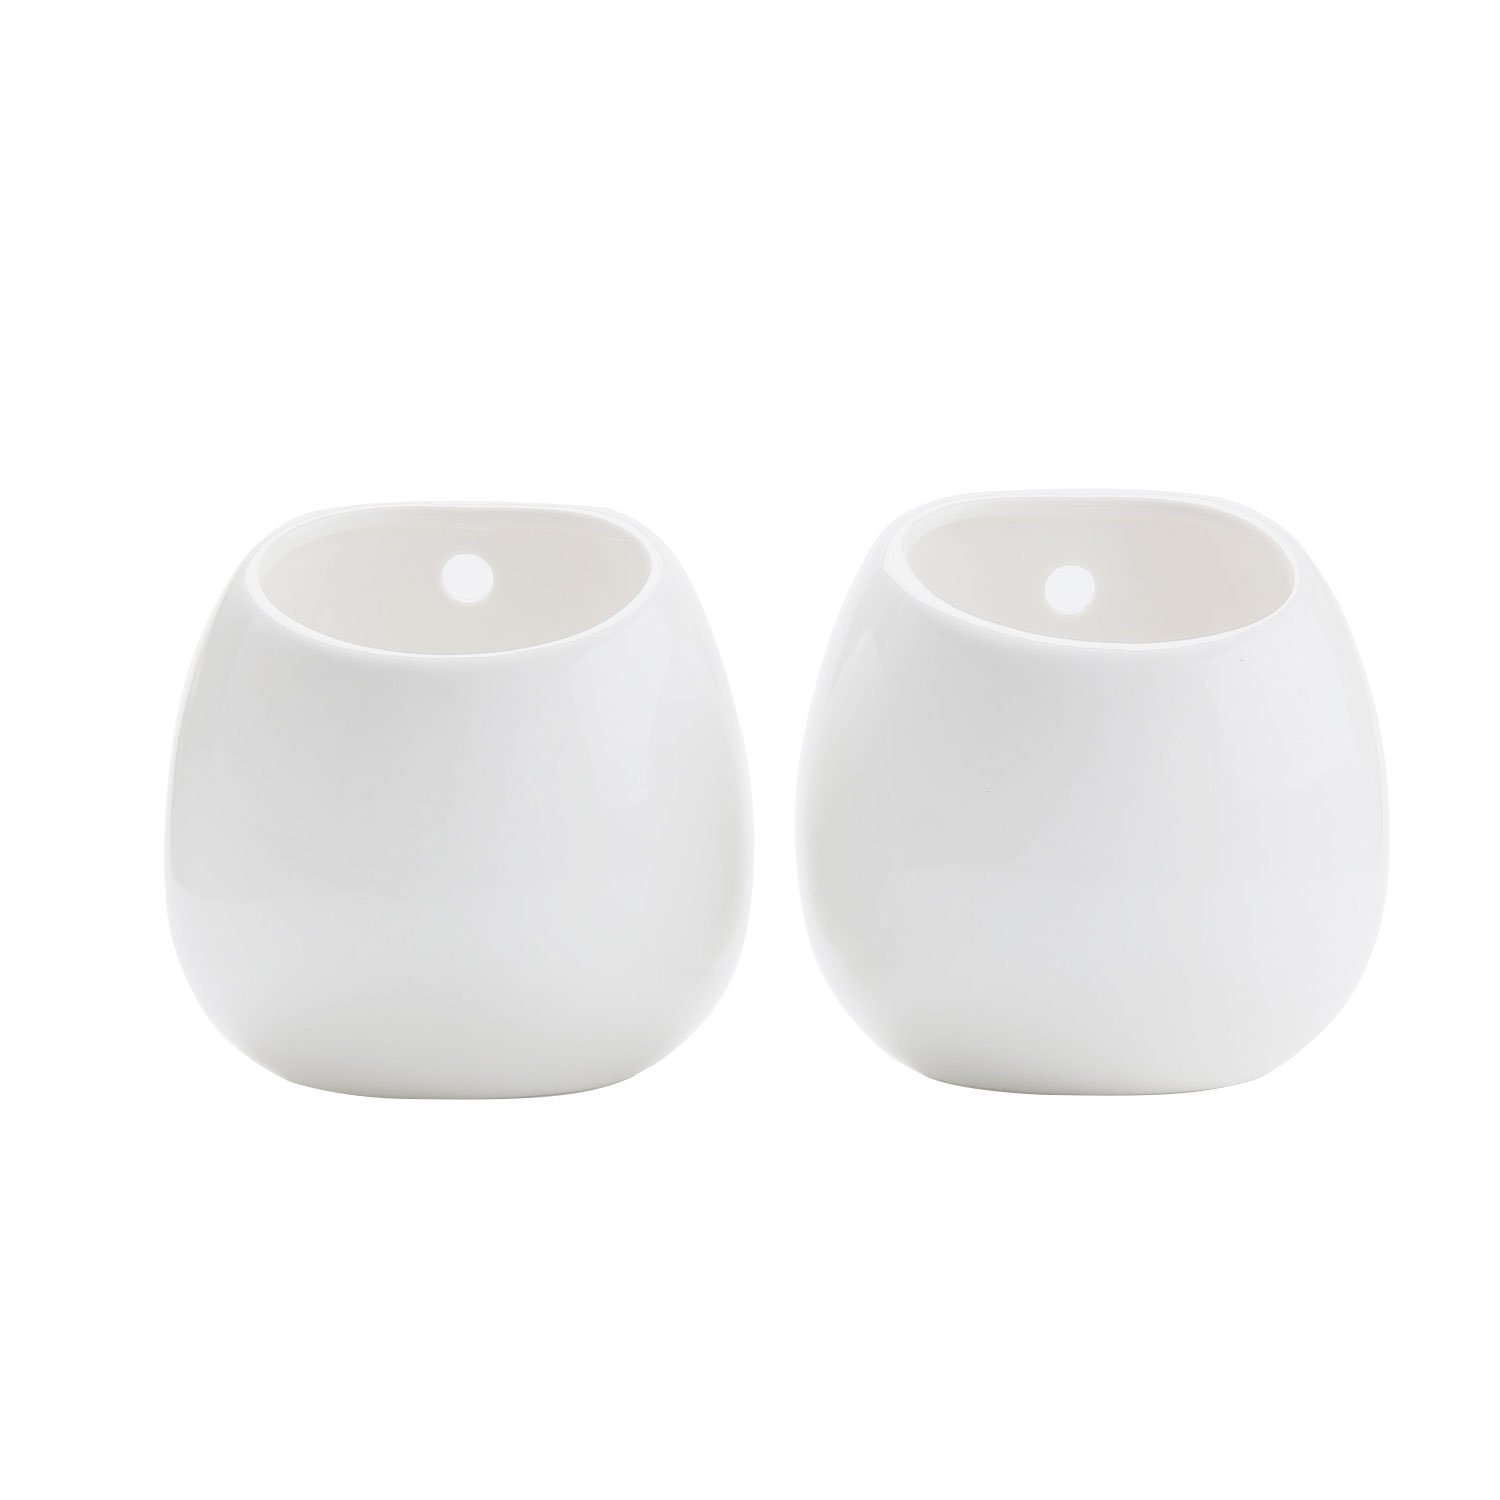 T4U Ceramic Wall Mounted Hanging Planter Vase Holder Pack of 2 Medium, Home Office Wall Decoration